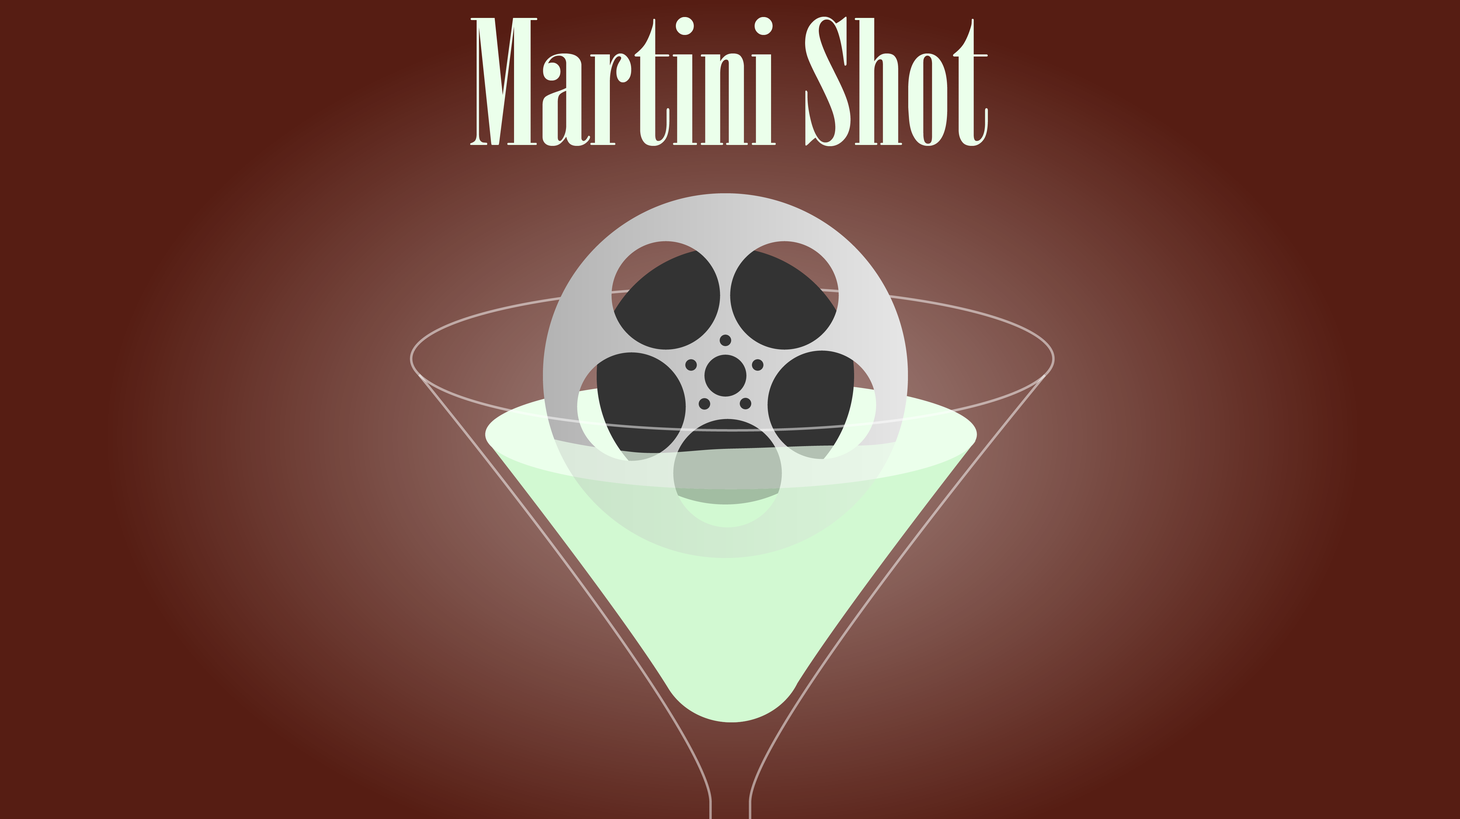 On today's Martini Shot, Rob tries to limit himself to saying things that fit the following criteria: Is it true, is it kind, and is it necessary. It's a very short Martini Shot.